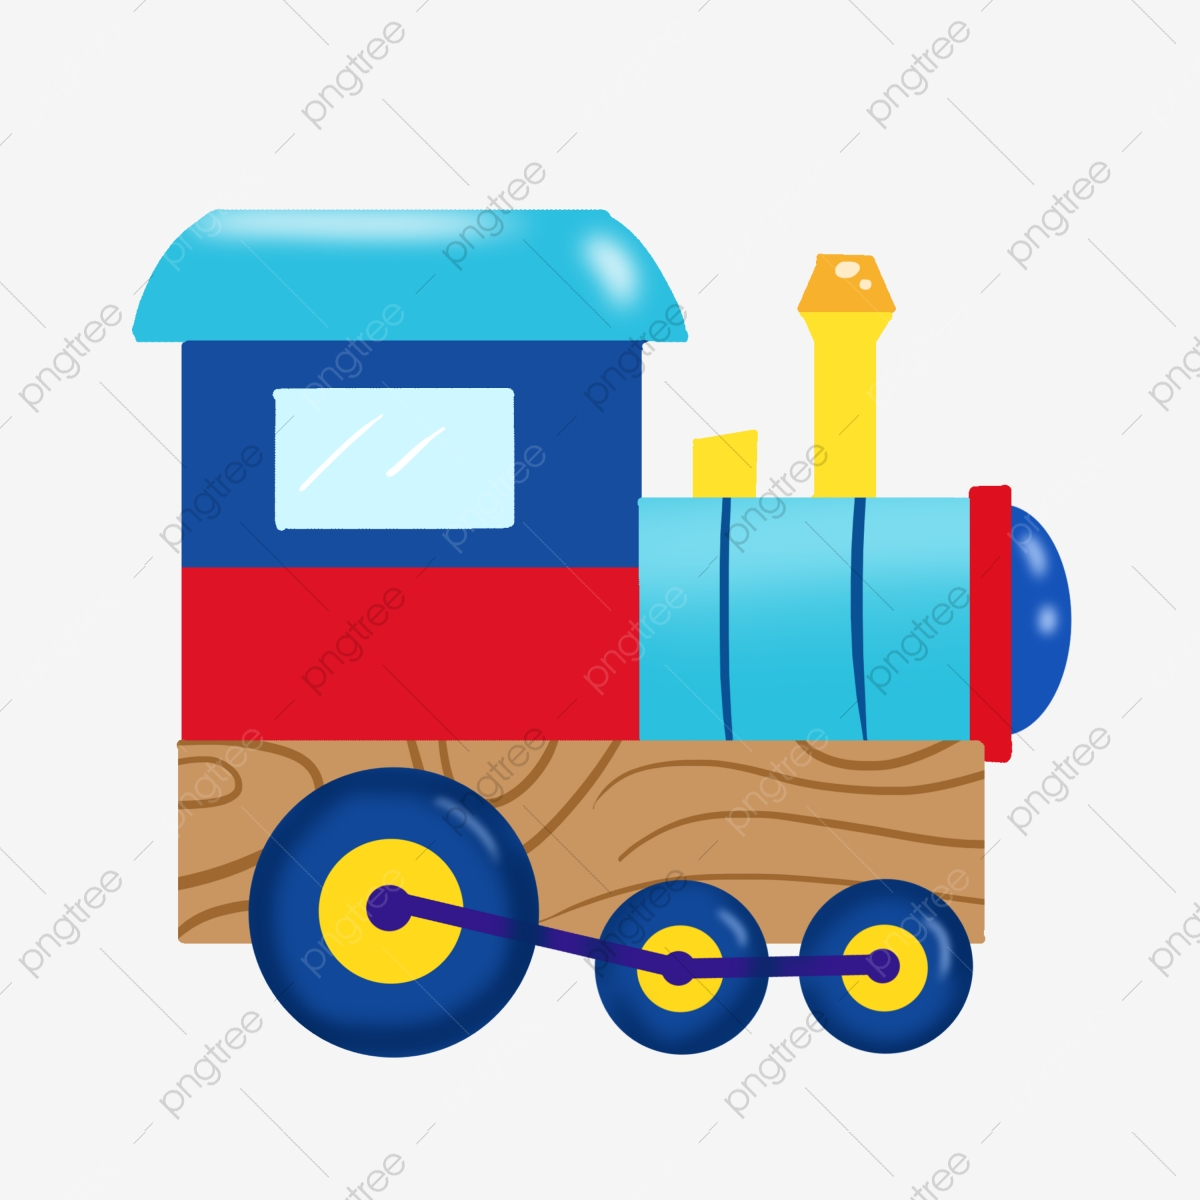 Toy Train Train Clipart Train Hand Painted Png Transparent Clipart Image And Psd File For Free Download